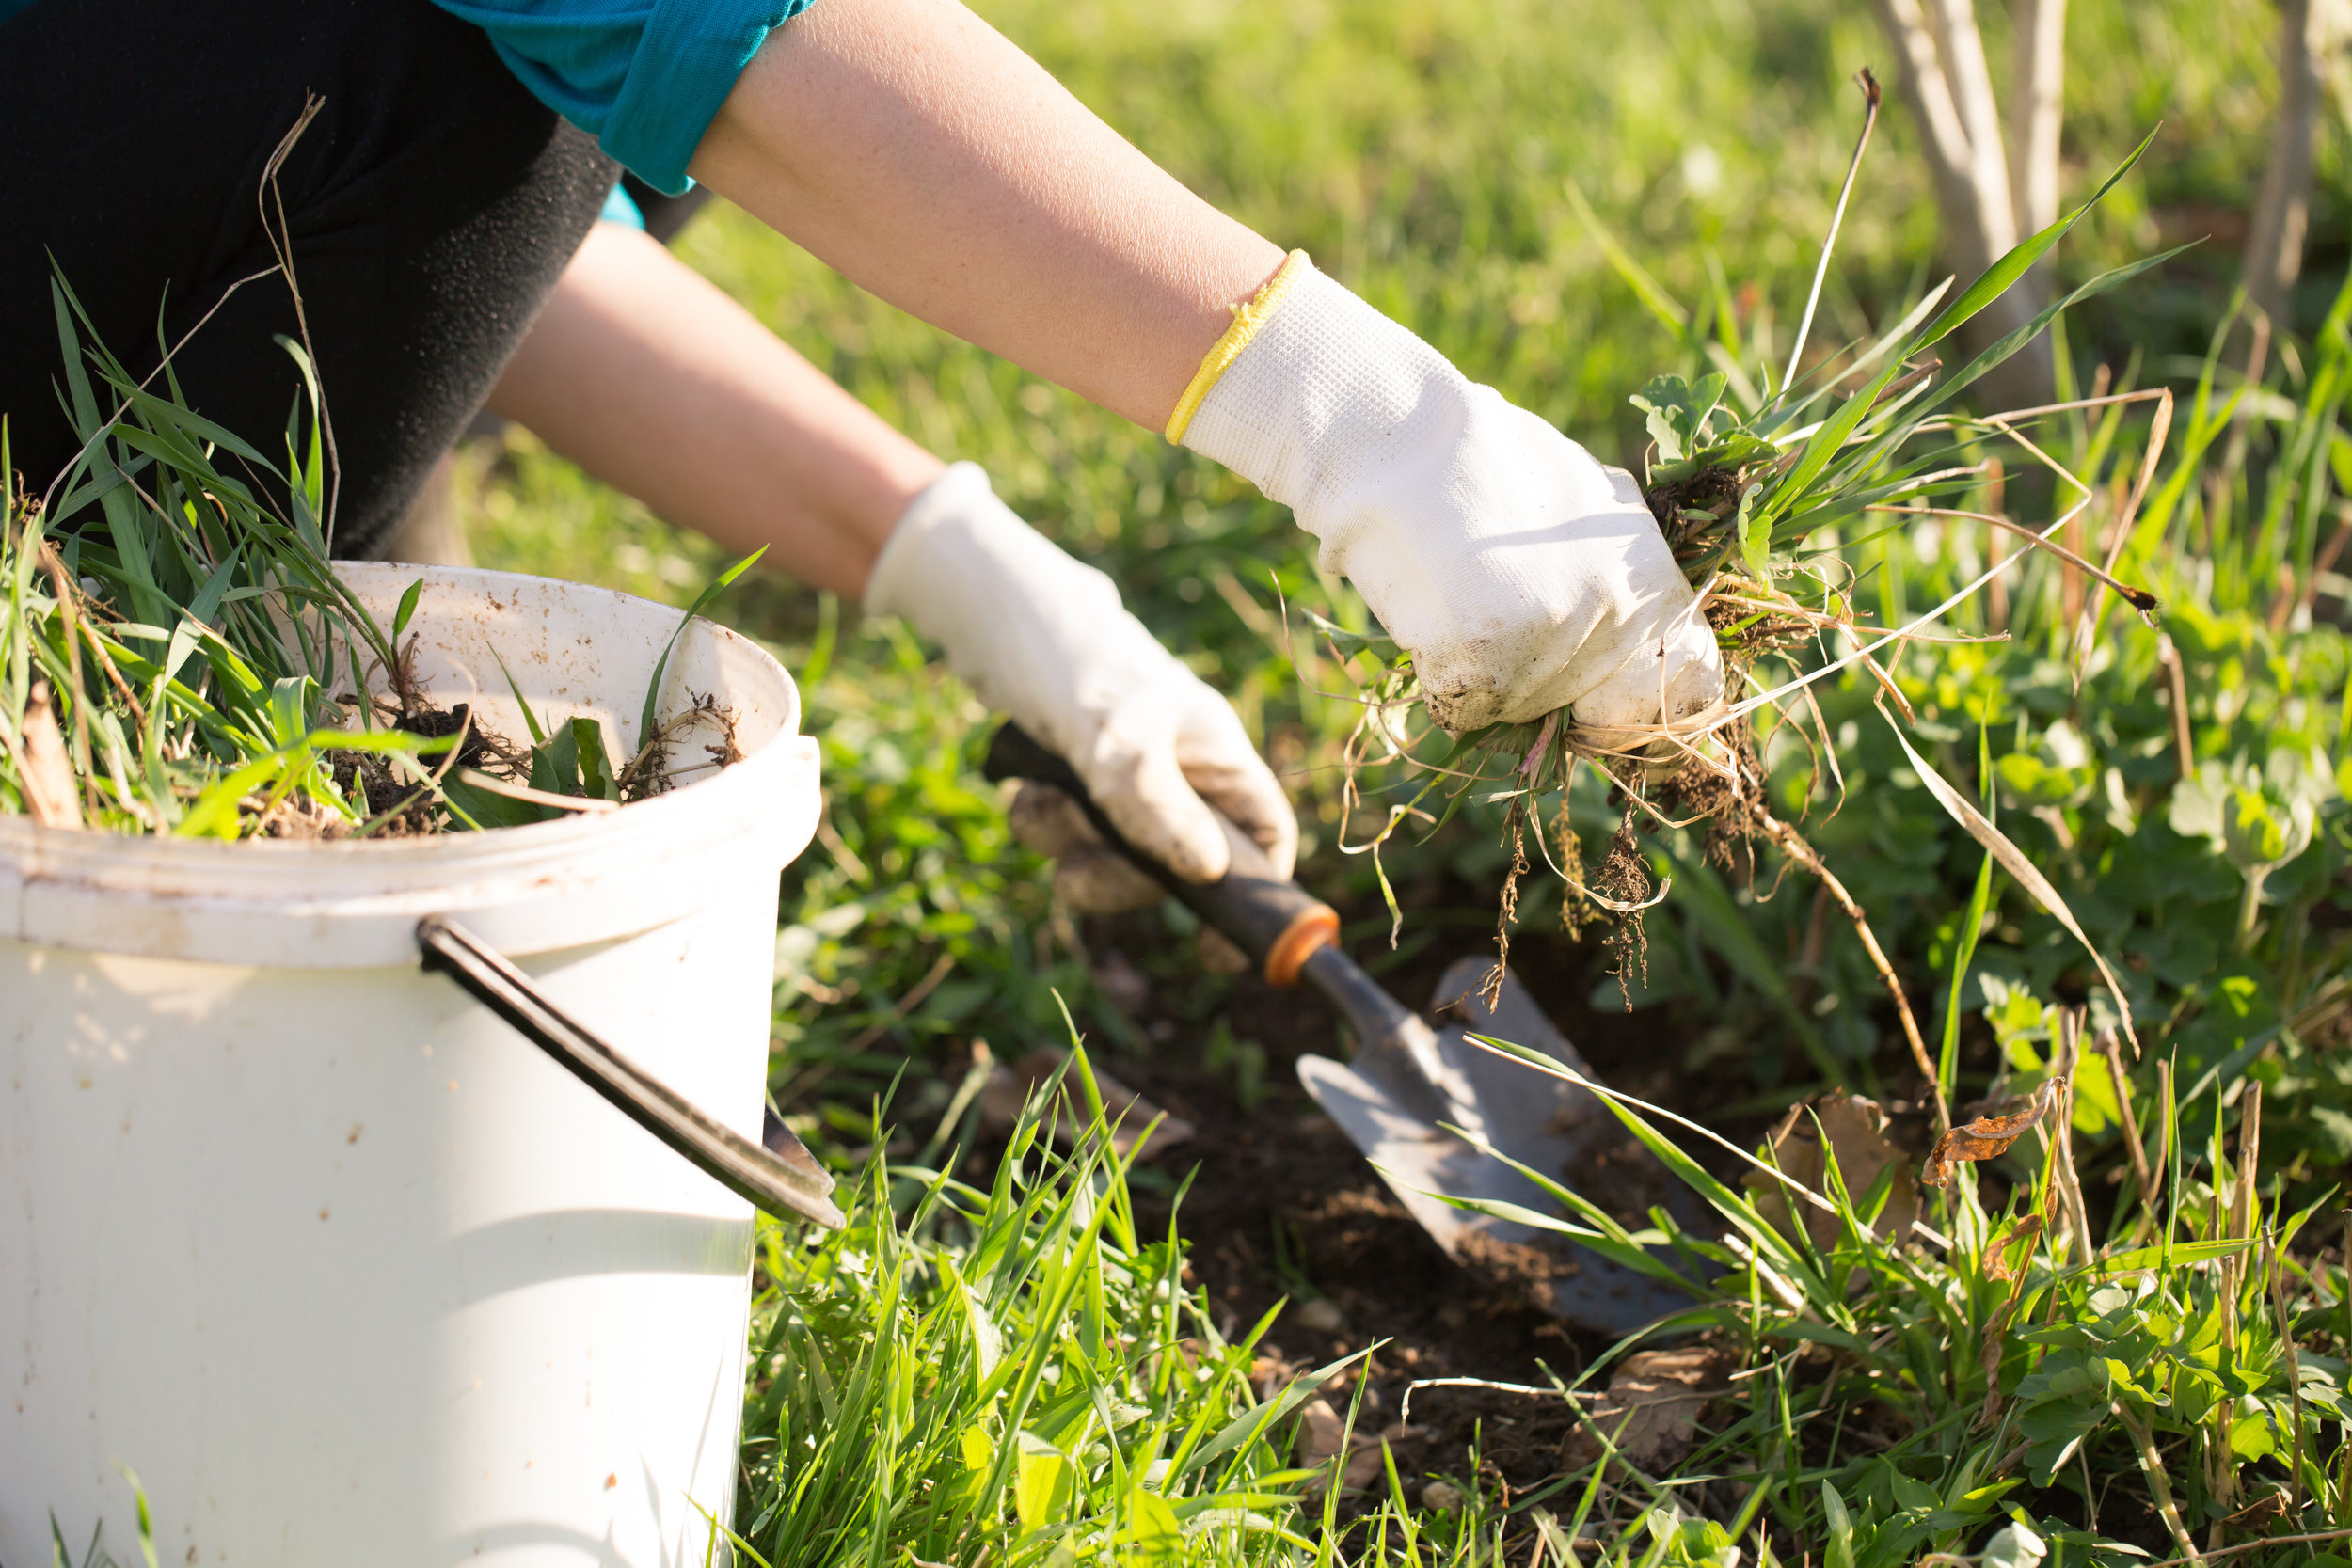 7 Things You Should Know About Lawn Weed Killer and Control Service in Poughkeepsie, NY